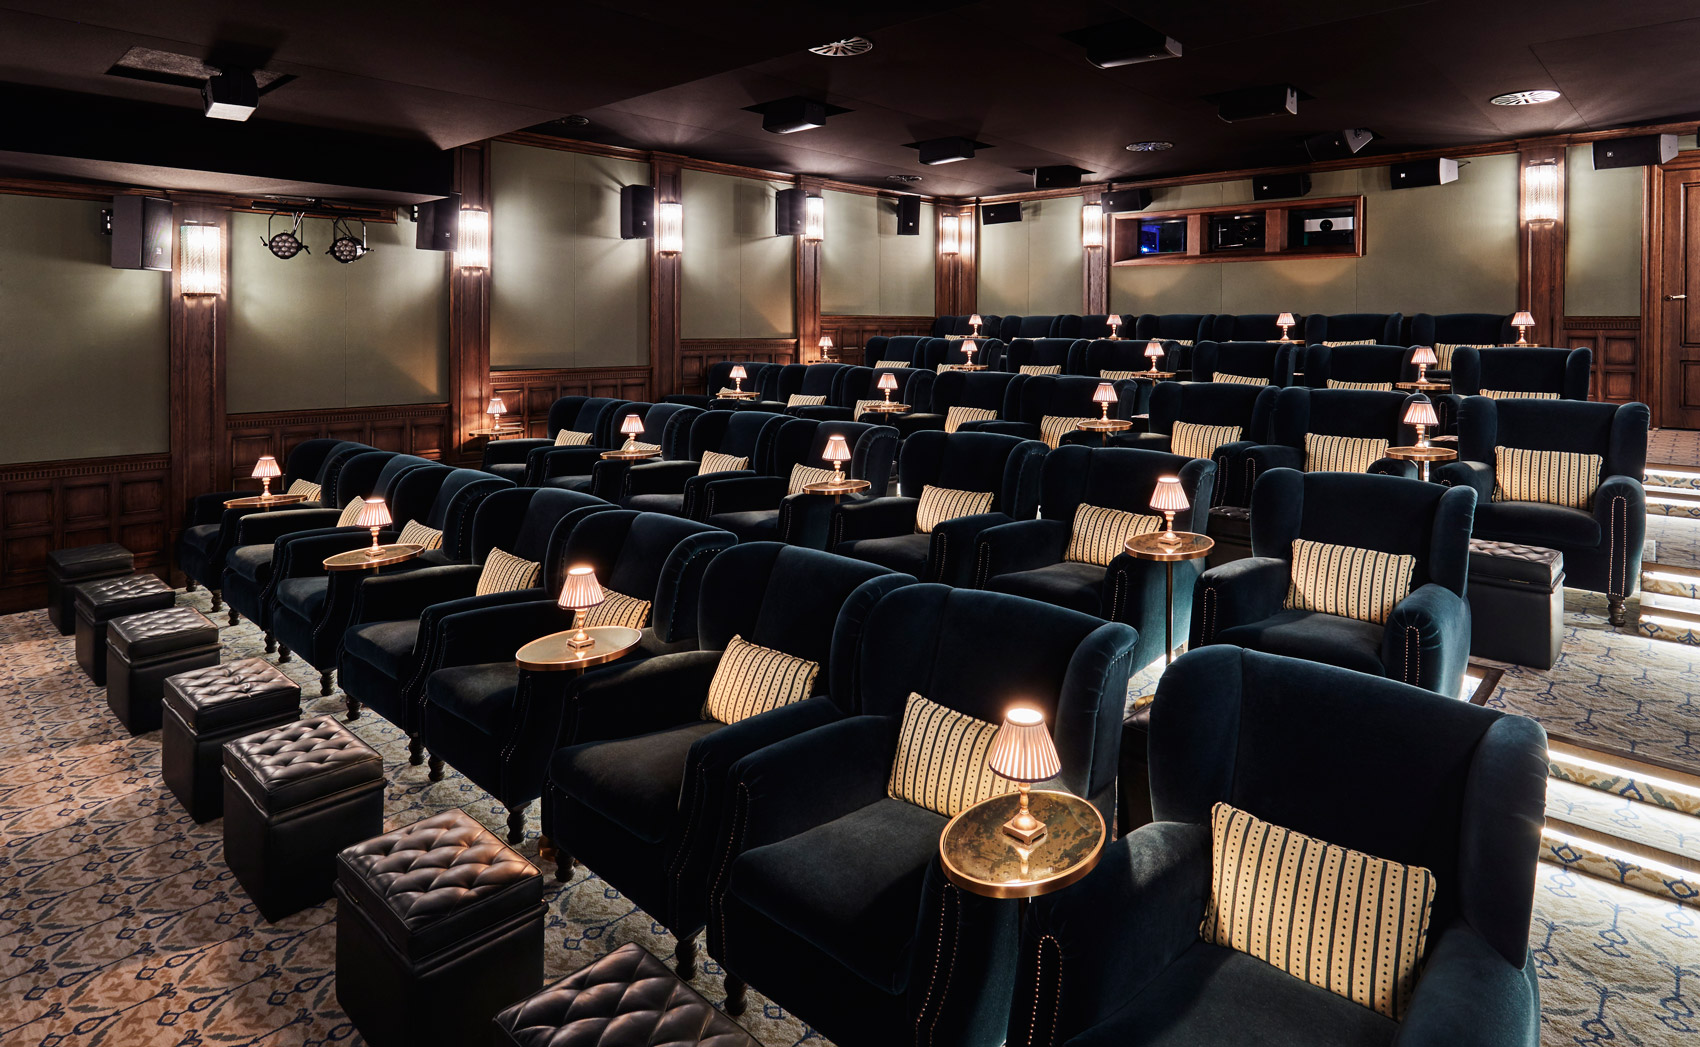 37-seat screening room